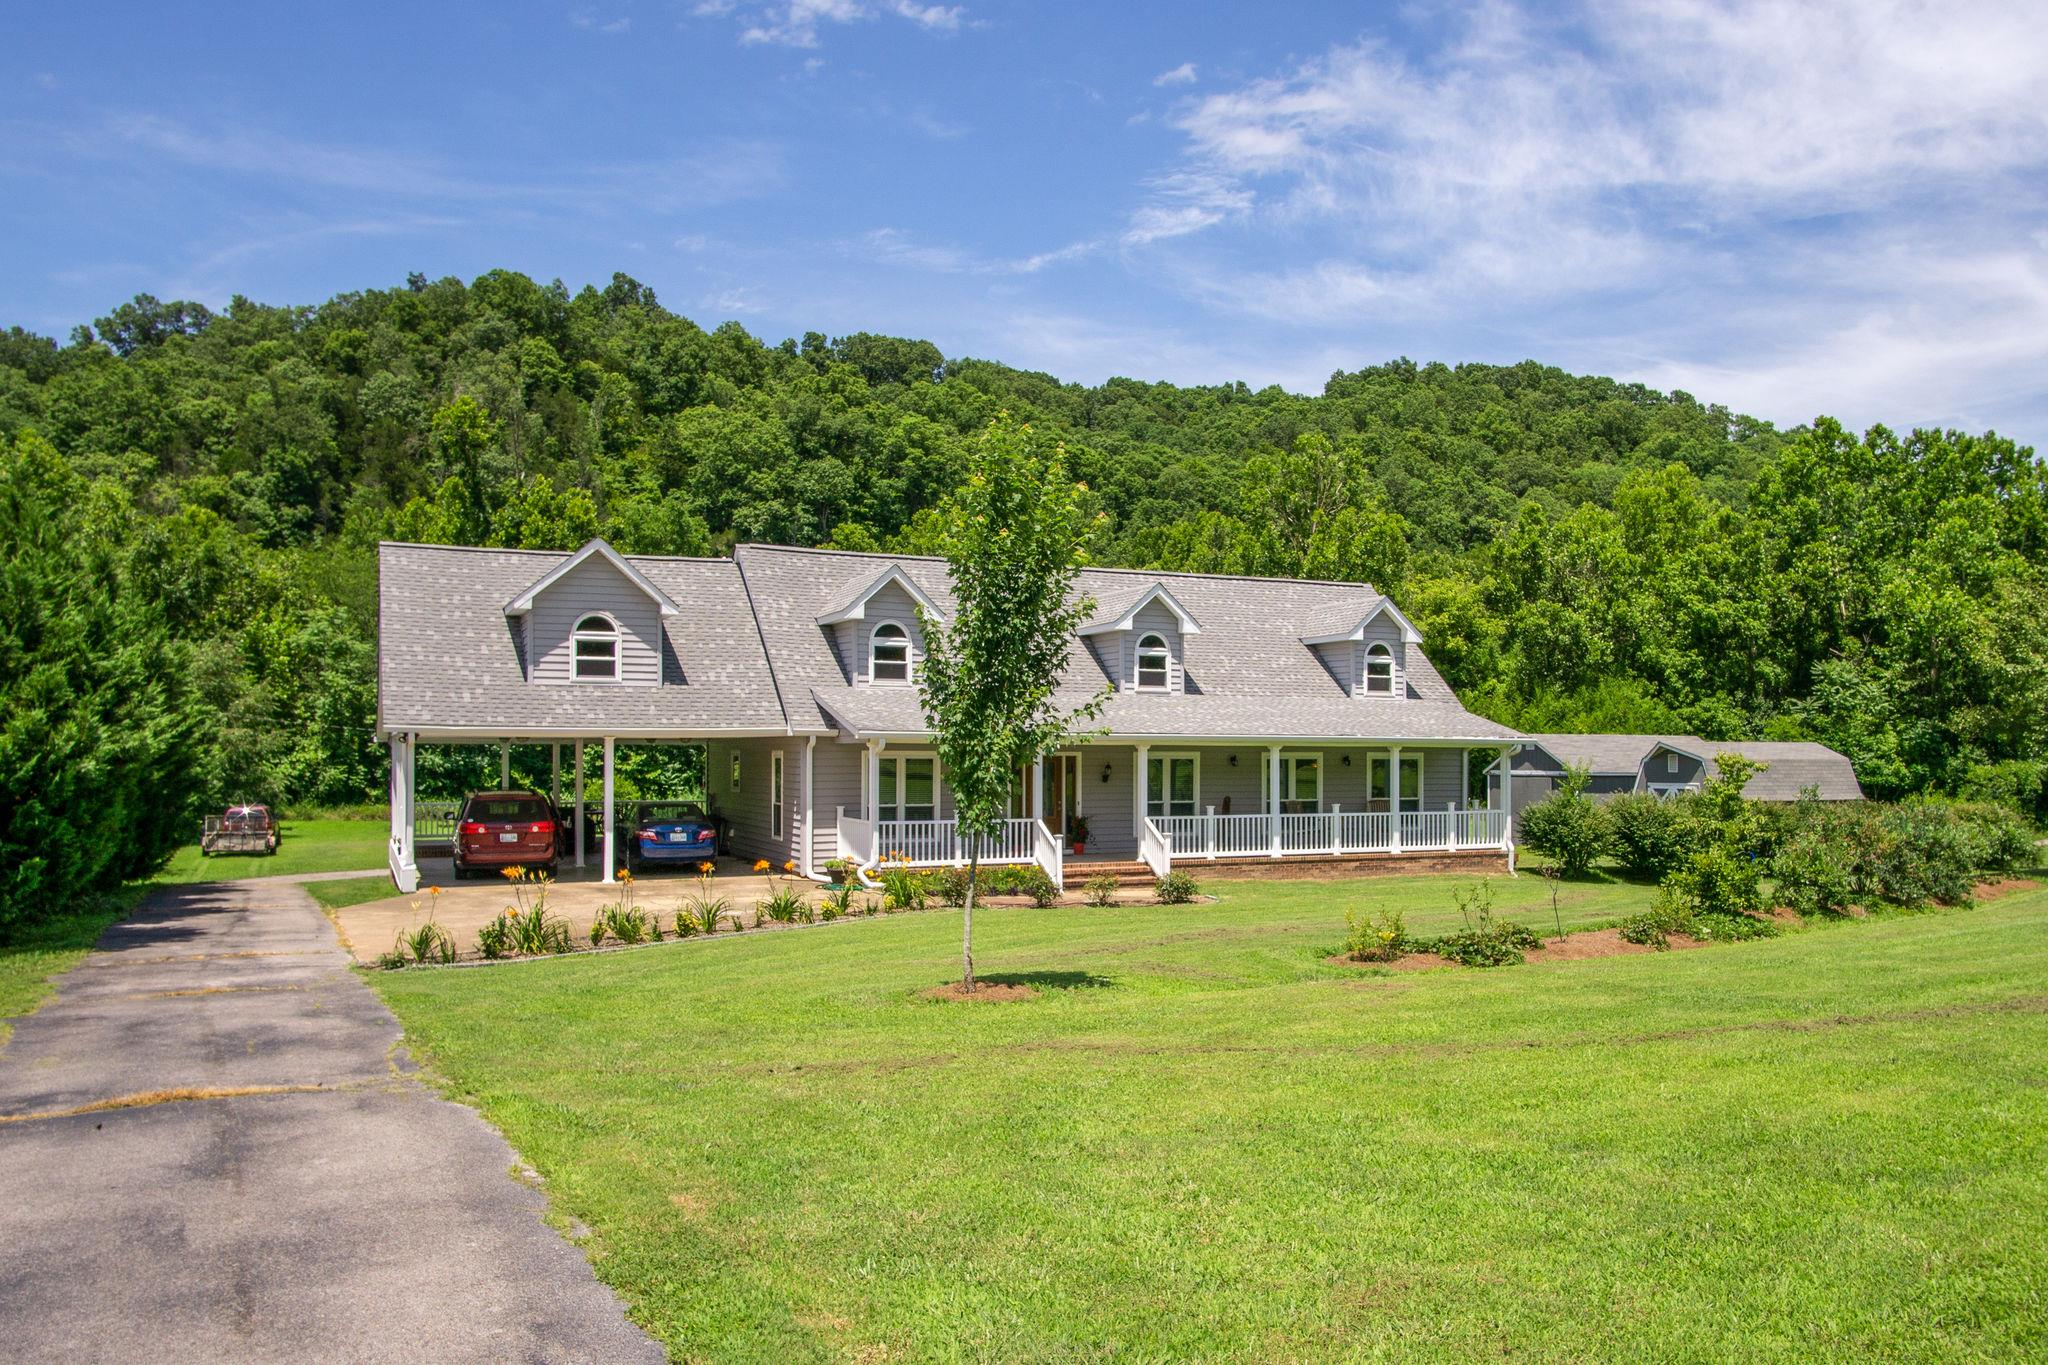 3531 Cane Creek Rd, Hohenwald, TN 38462 - Hohenwald, TN real estate listing